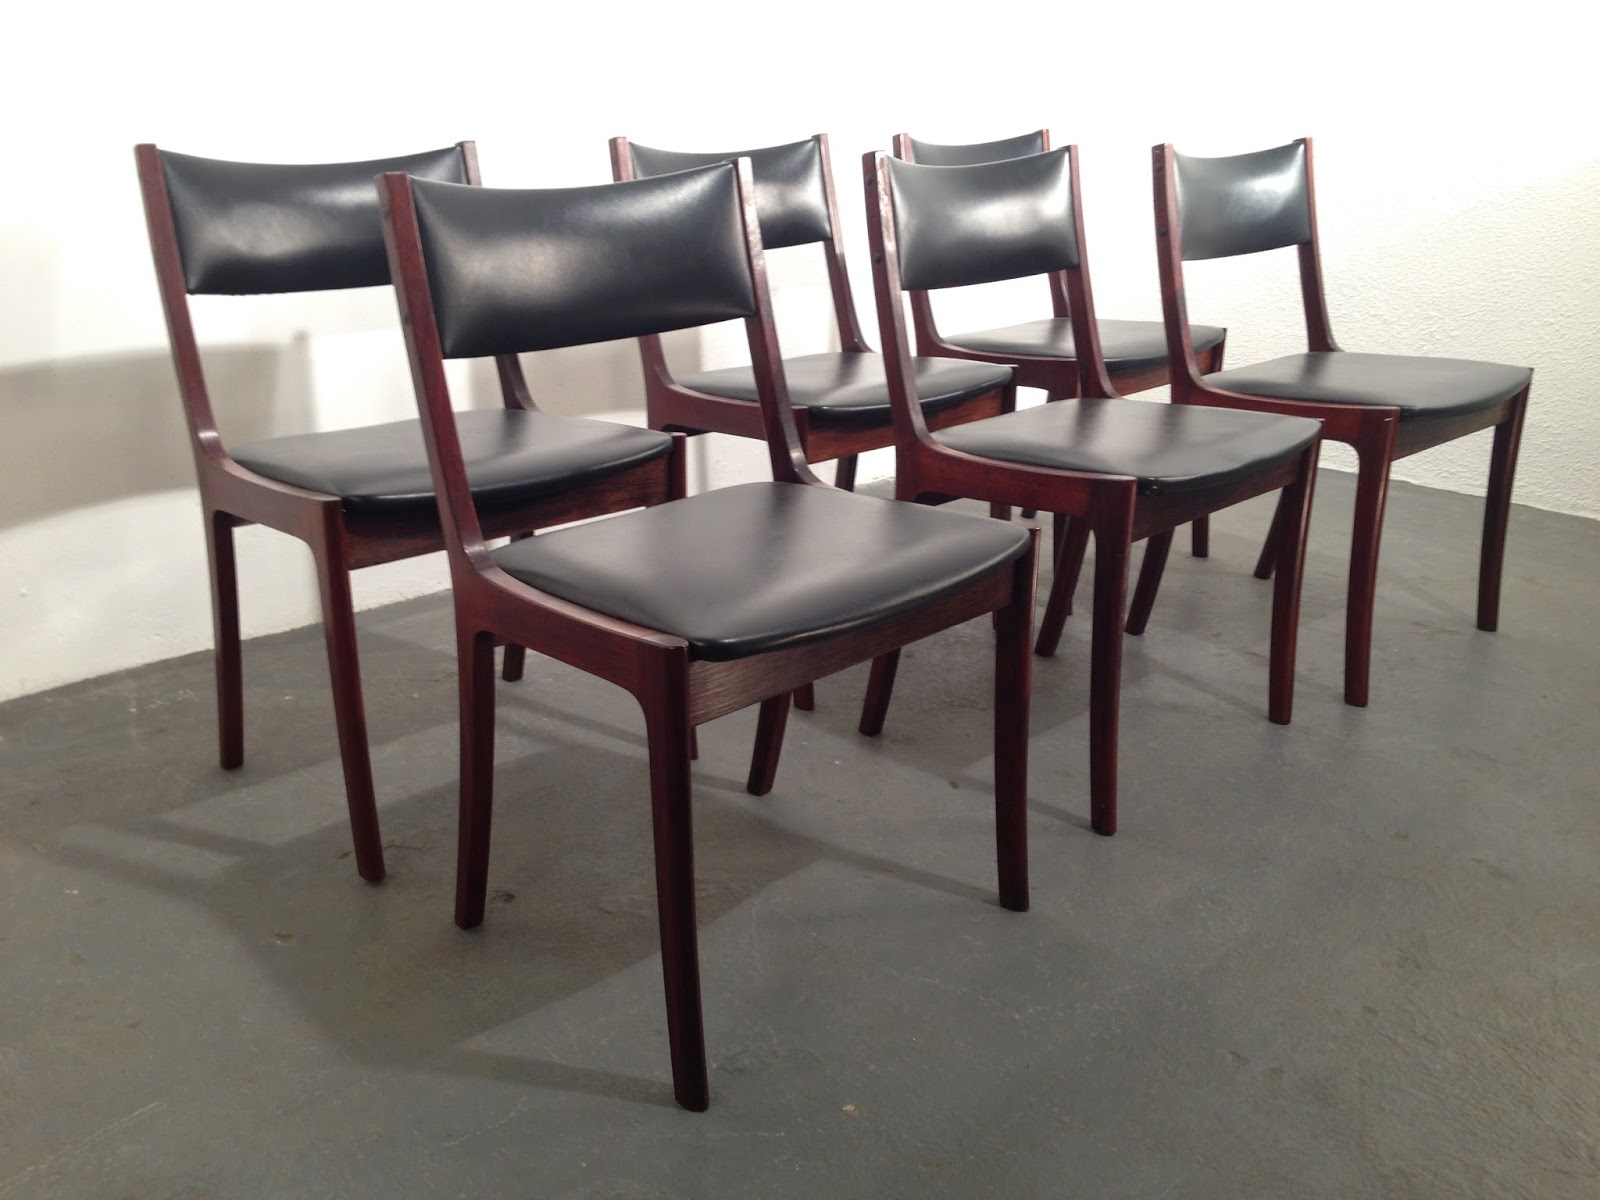 retro dining chairs ireland wholesale vintage furniture ocd 1970s rosewood